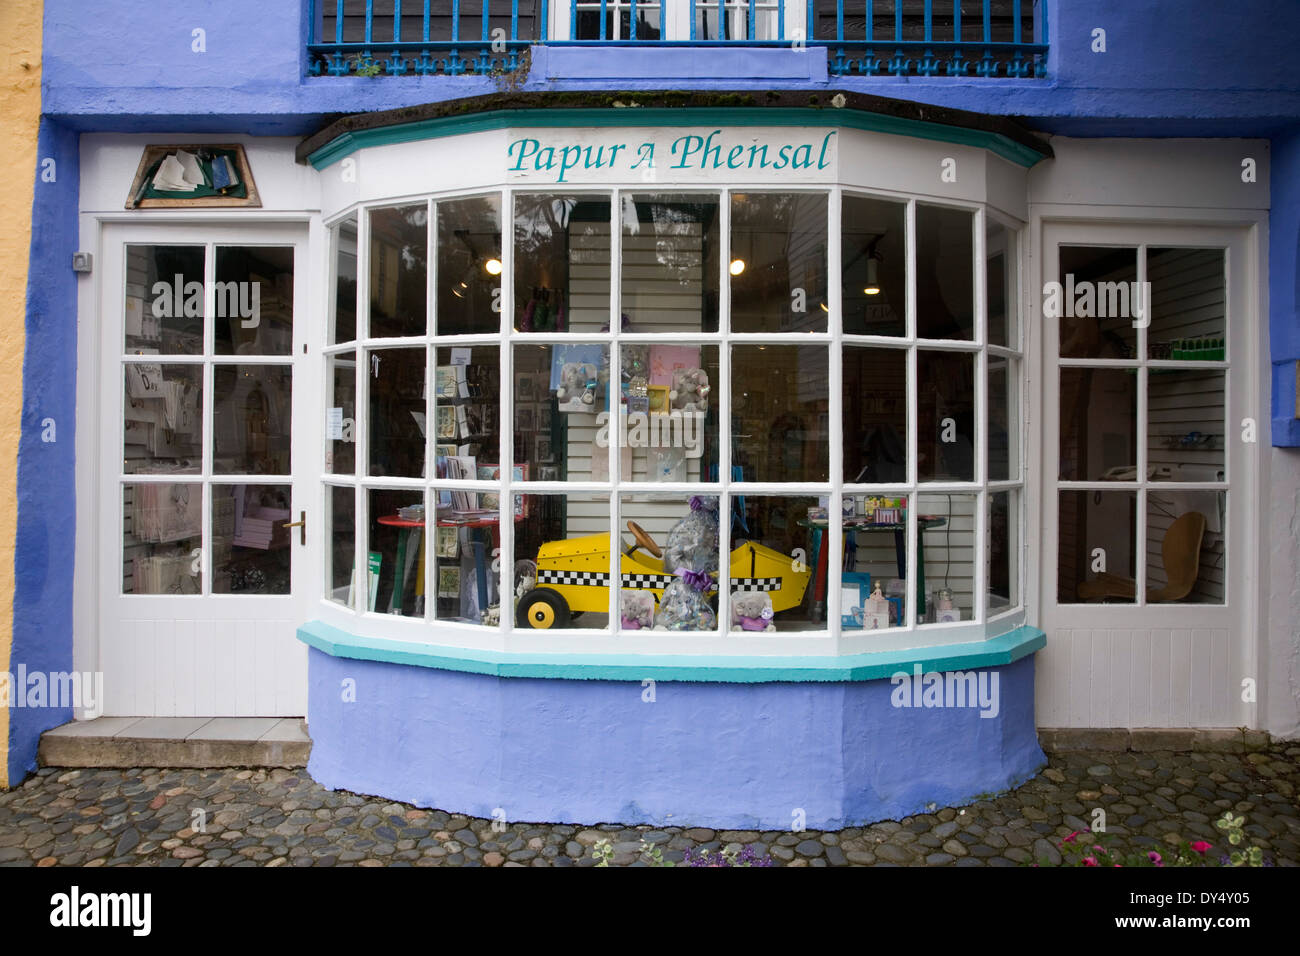 Greeting card shop stock photos greeting card shop stock images greeting card shop portmeirion wales united kingdom stock image m4hsunfo Image collections